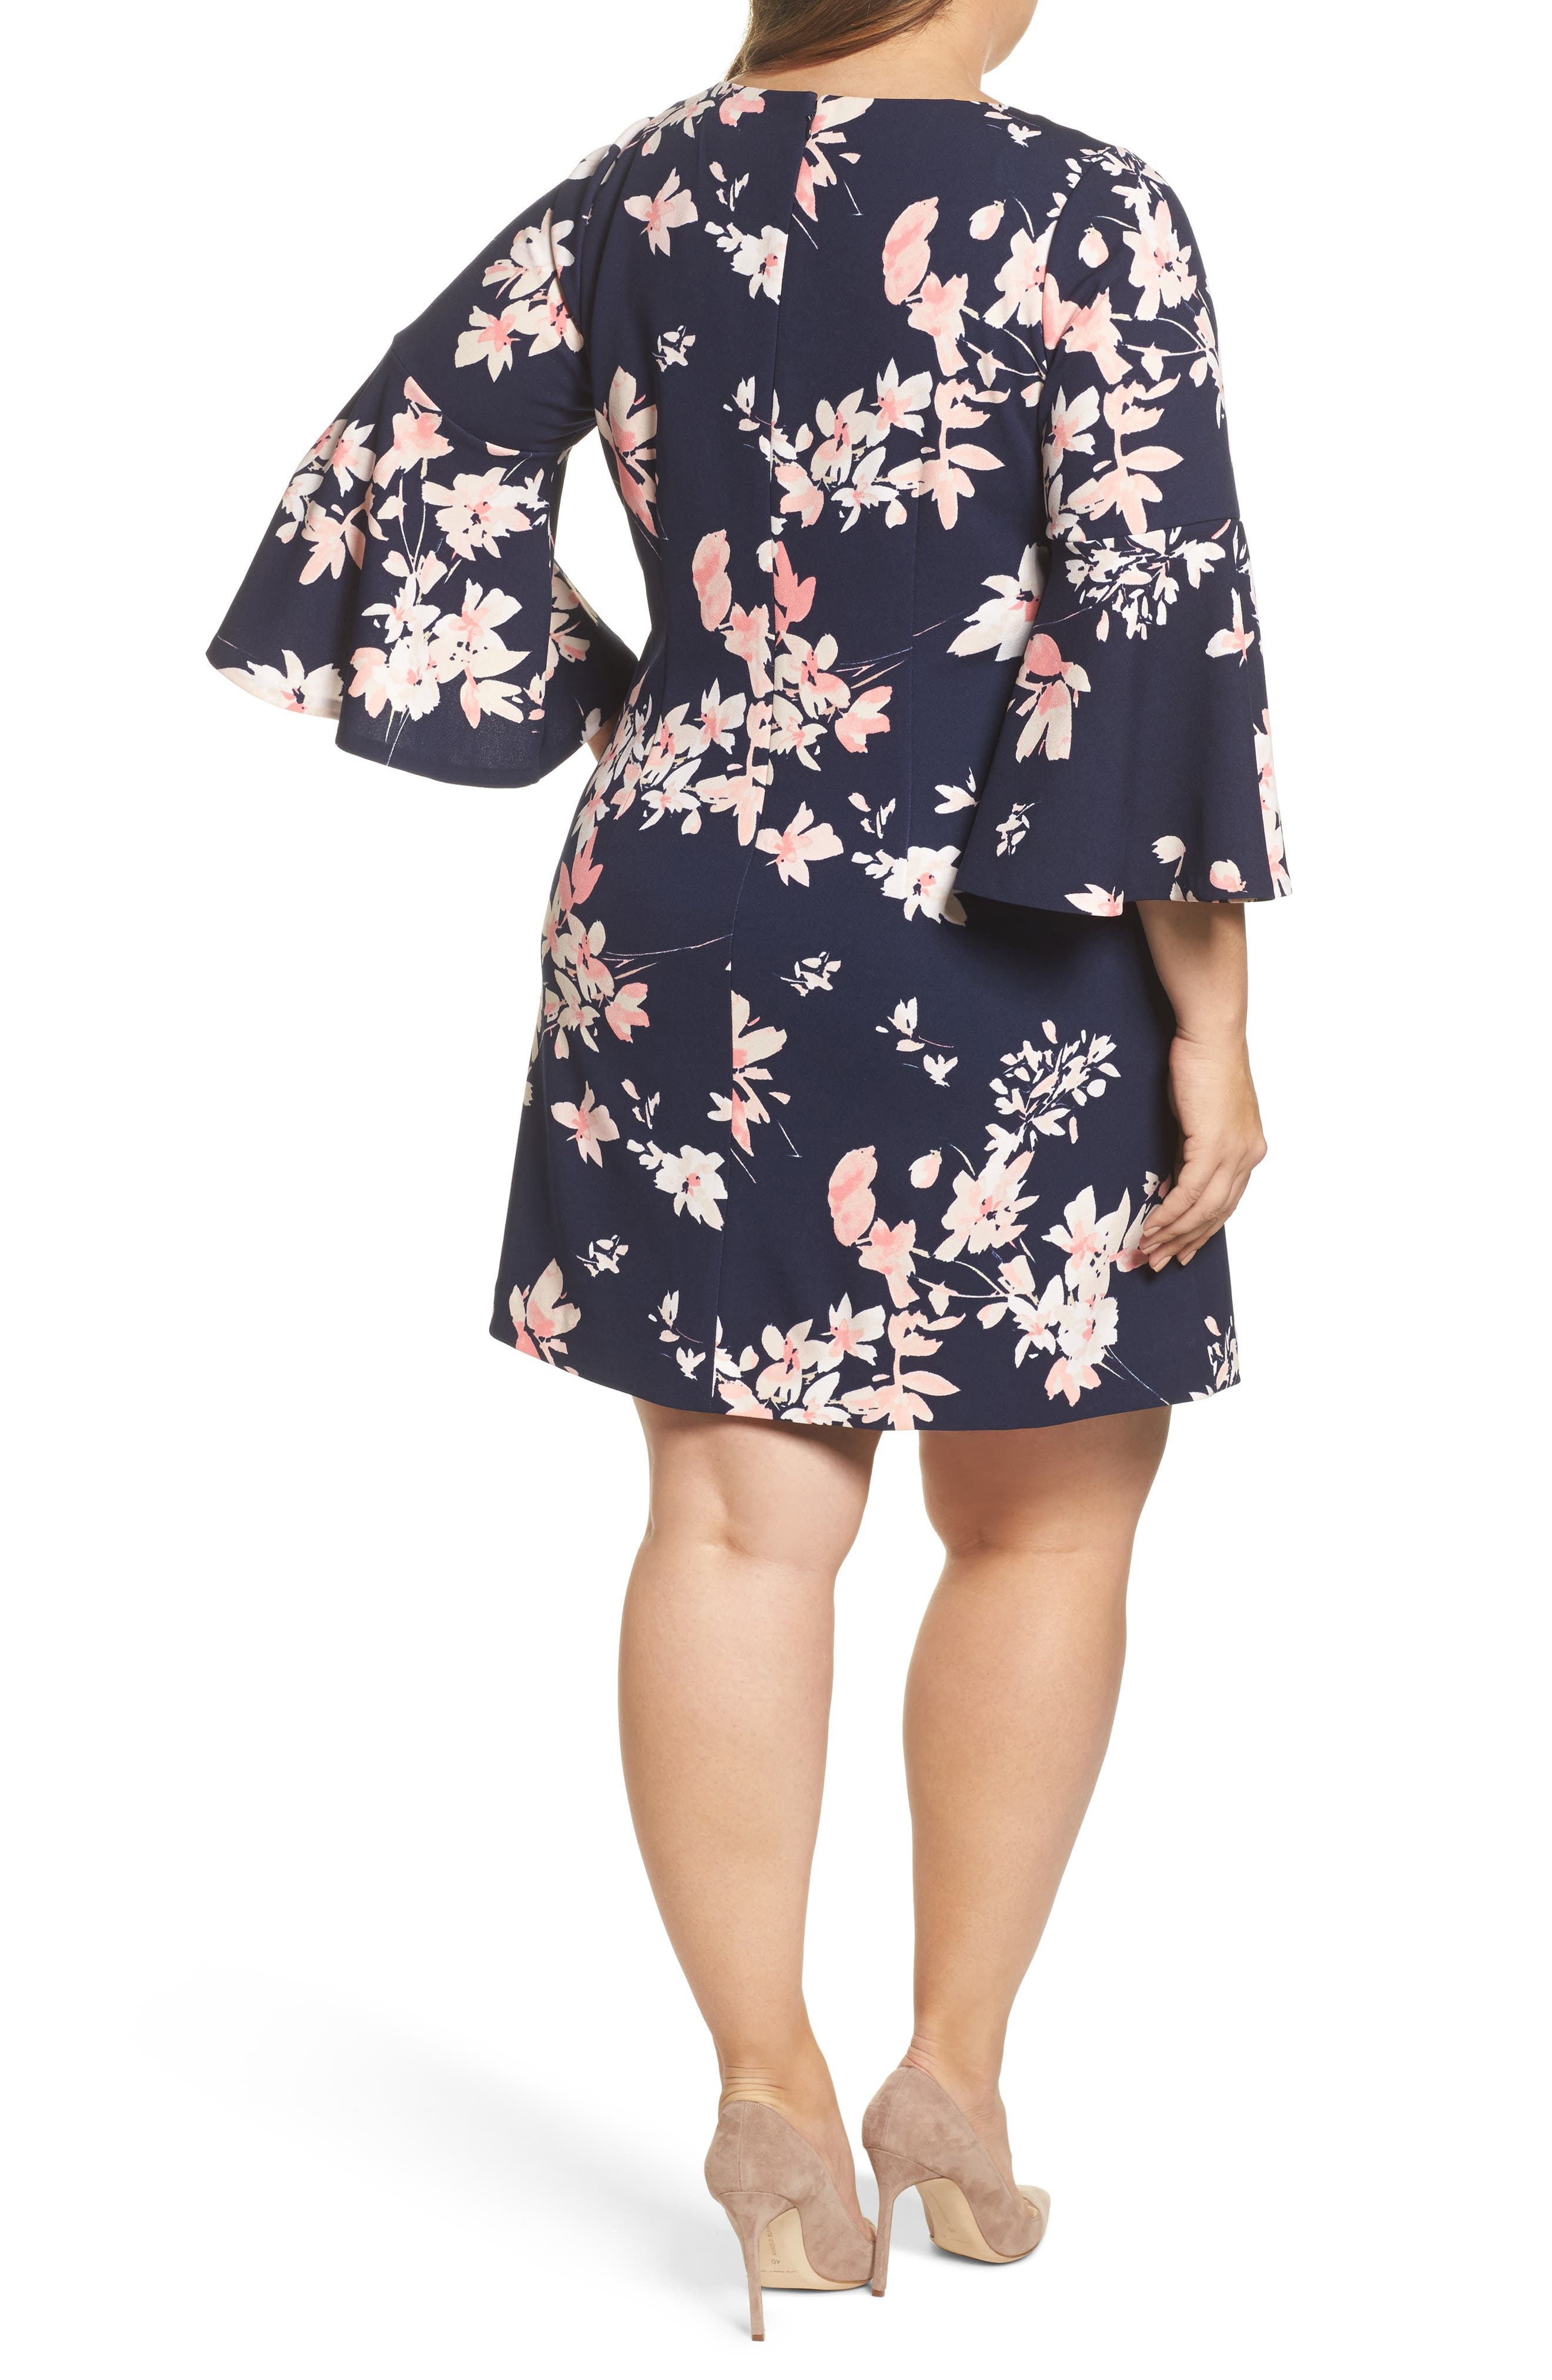 Floral Print Bell Sleeve Shift Dress,                             Alternate thumbnail 2, color,                             NAVY/ PINK